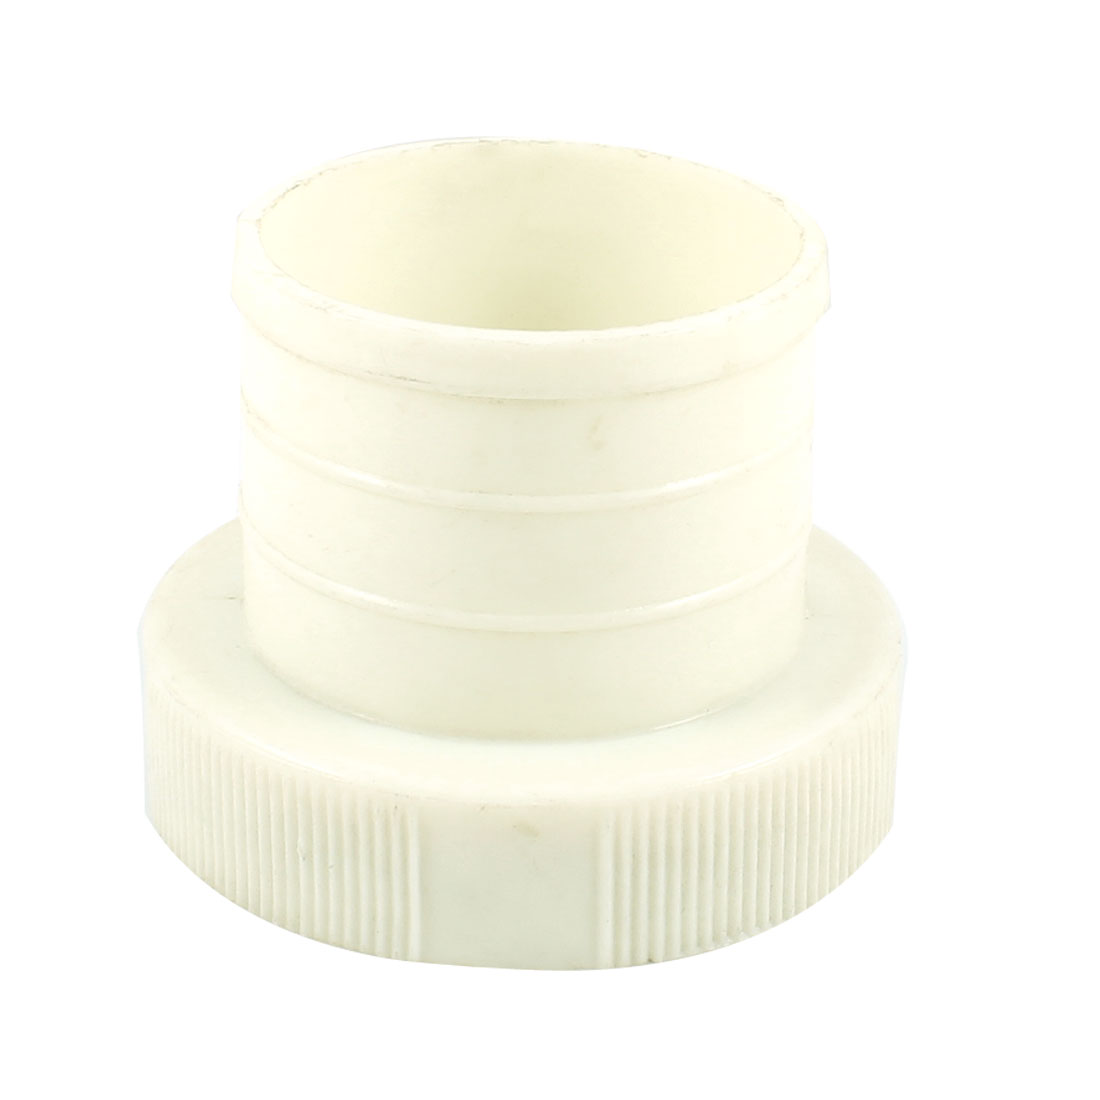 Off White Plastic Hose Quick Adapter Connector for Fire Hydrant